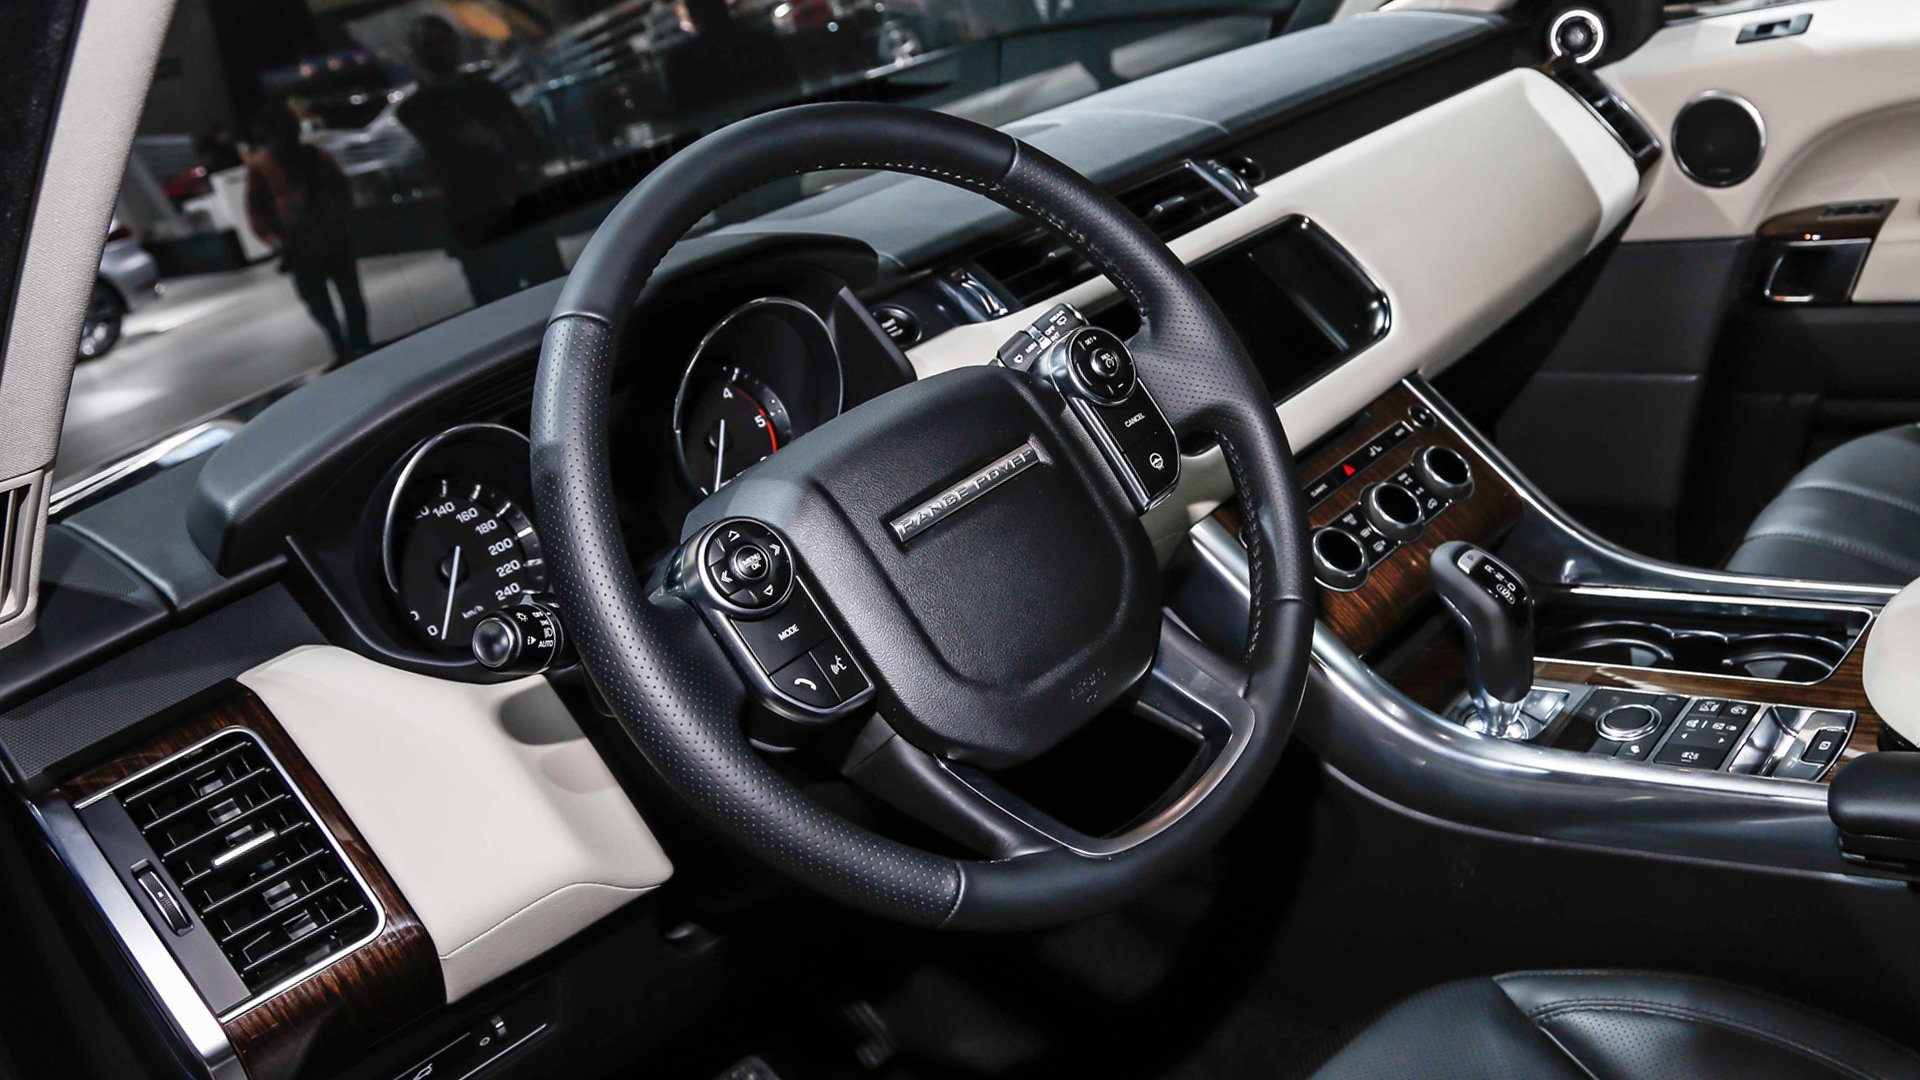 New 2019 Range Rover Sport Interior Design